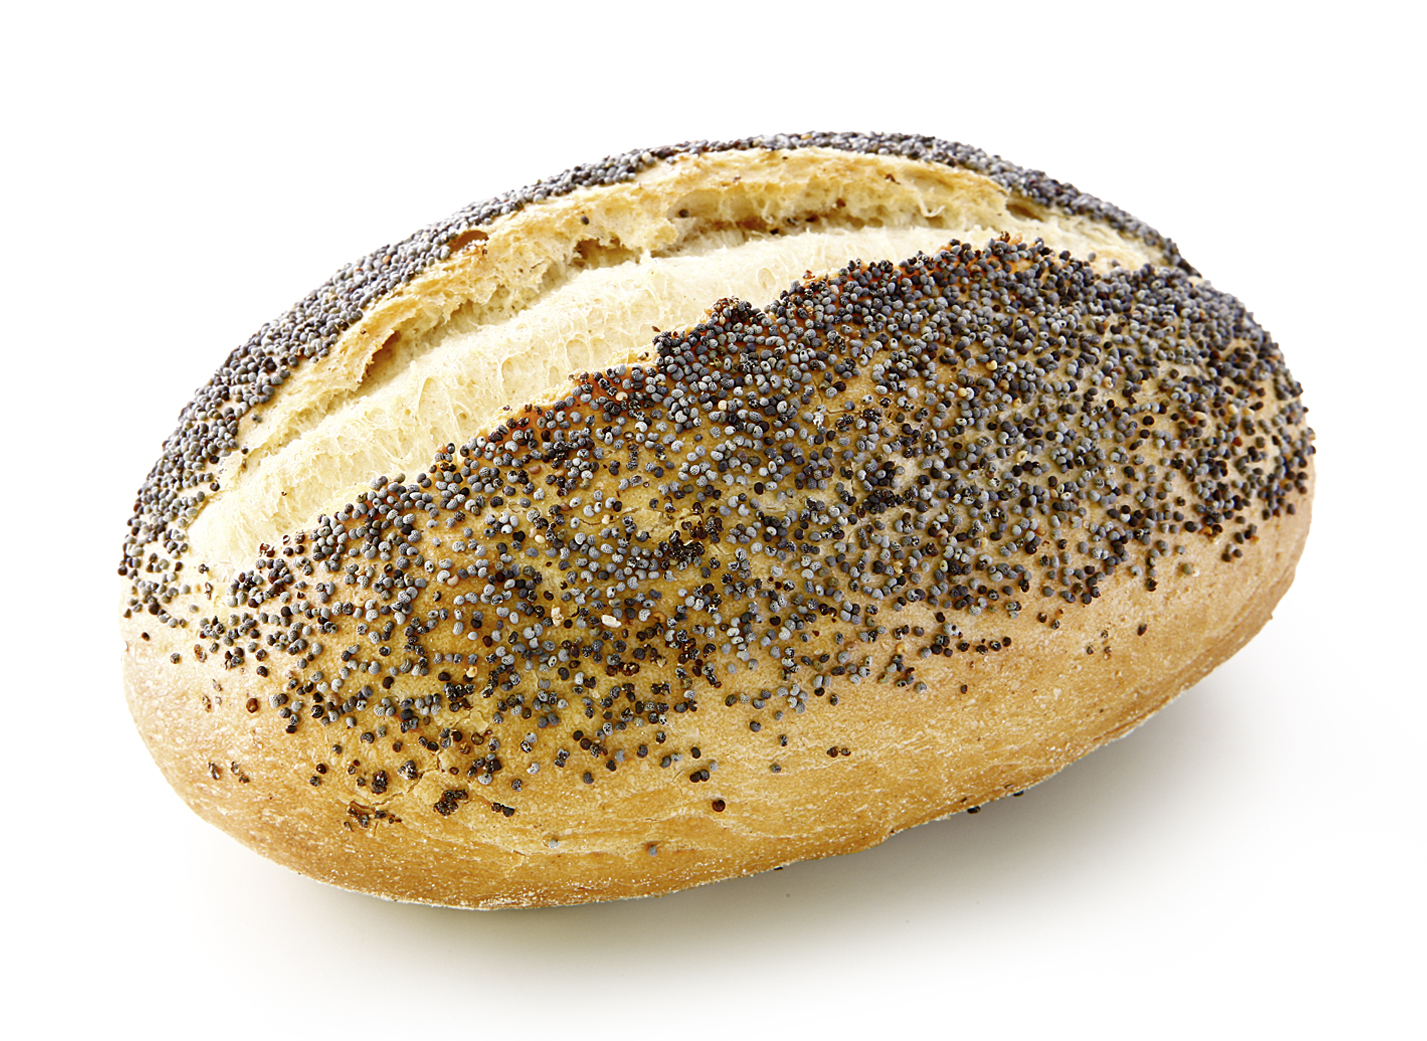 Poppy Seed Roll - Small wheat bakery oval/ sprinkled with poppy seeds